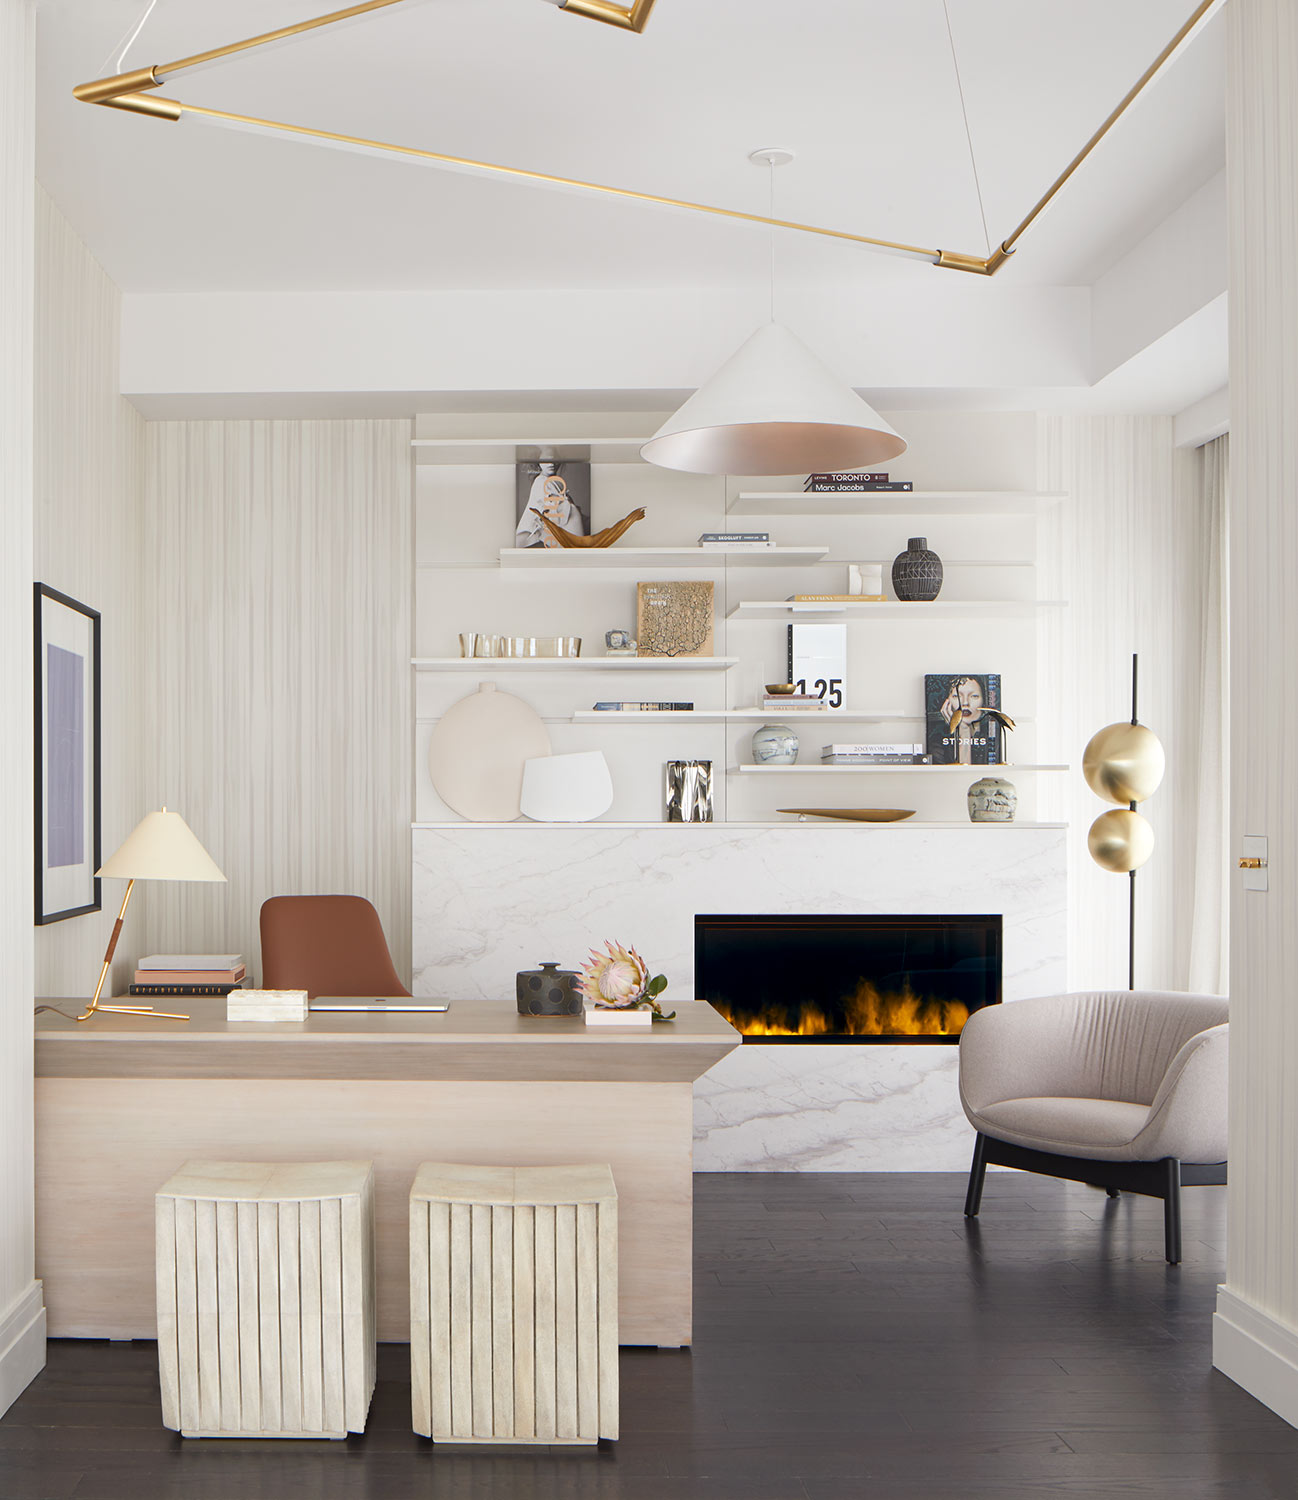 Bay street condo office with fireplace